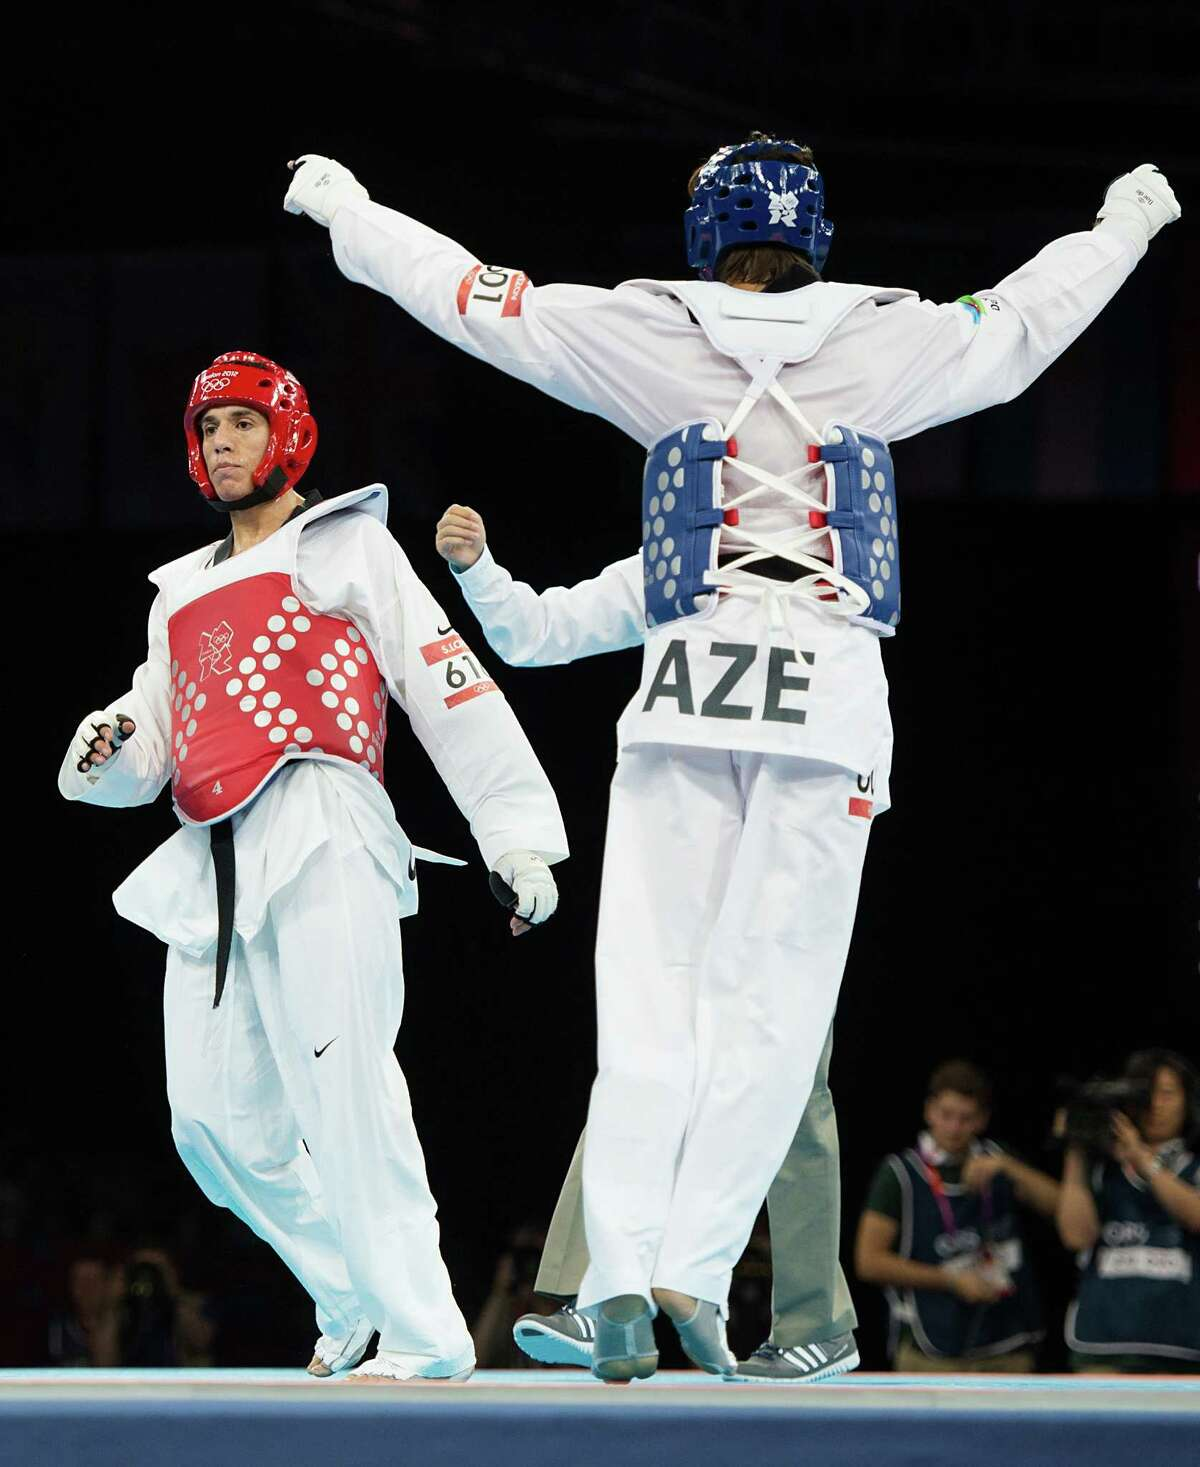 Azerbaijan's Ramin Azizov celebrate his victory over Steven Lopez of the USA, left, in the men's 80-kg taekwondo competition at the 2012 London Olympics on Friday, Aug. 10, 2012.